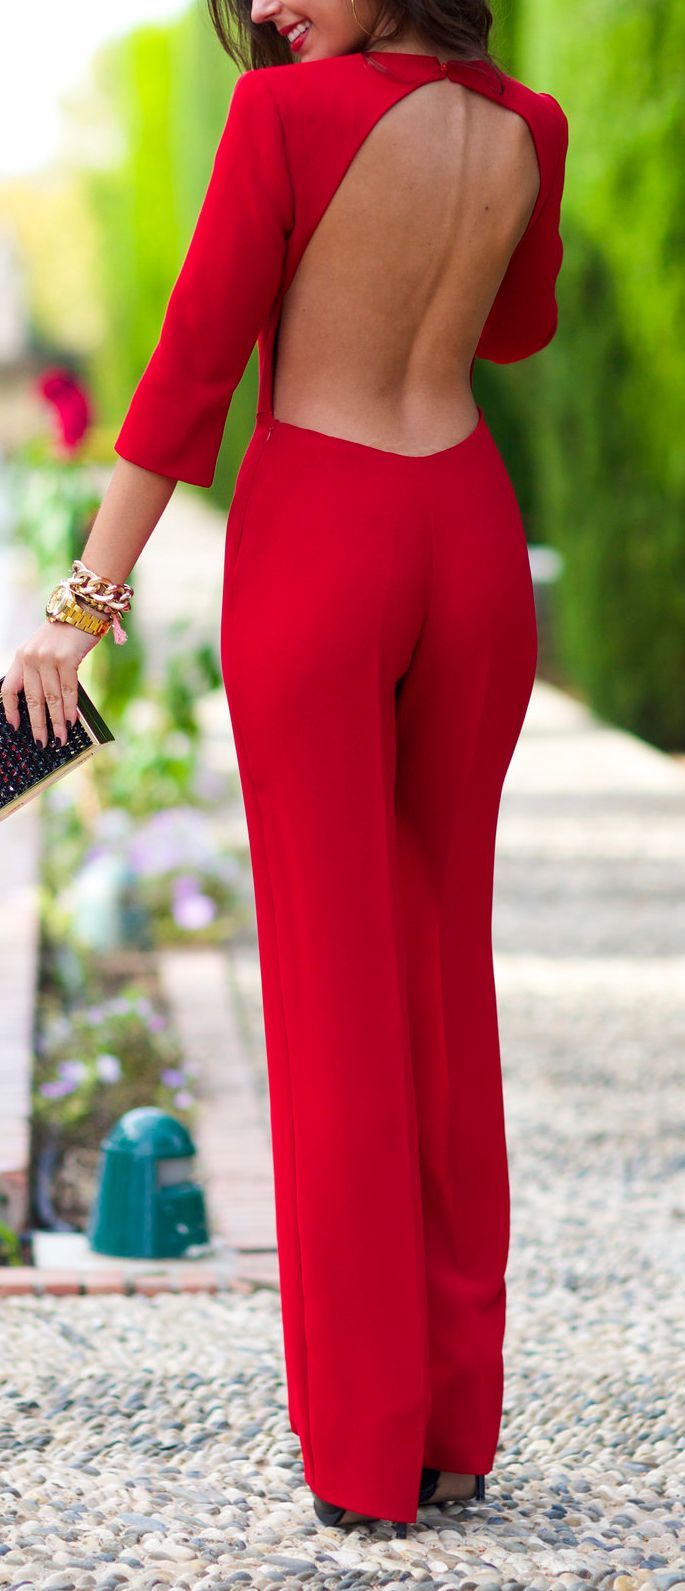 17 Best ideas about Backless Jumpsuit on Pinterest | Black ...